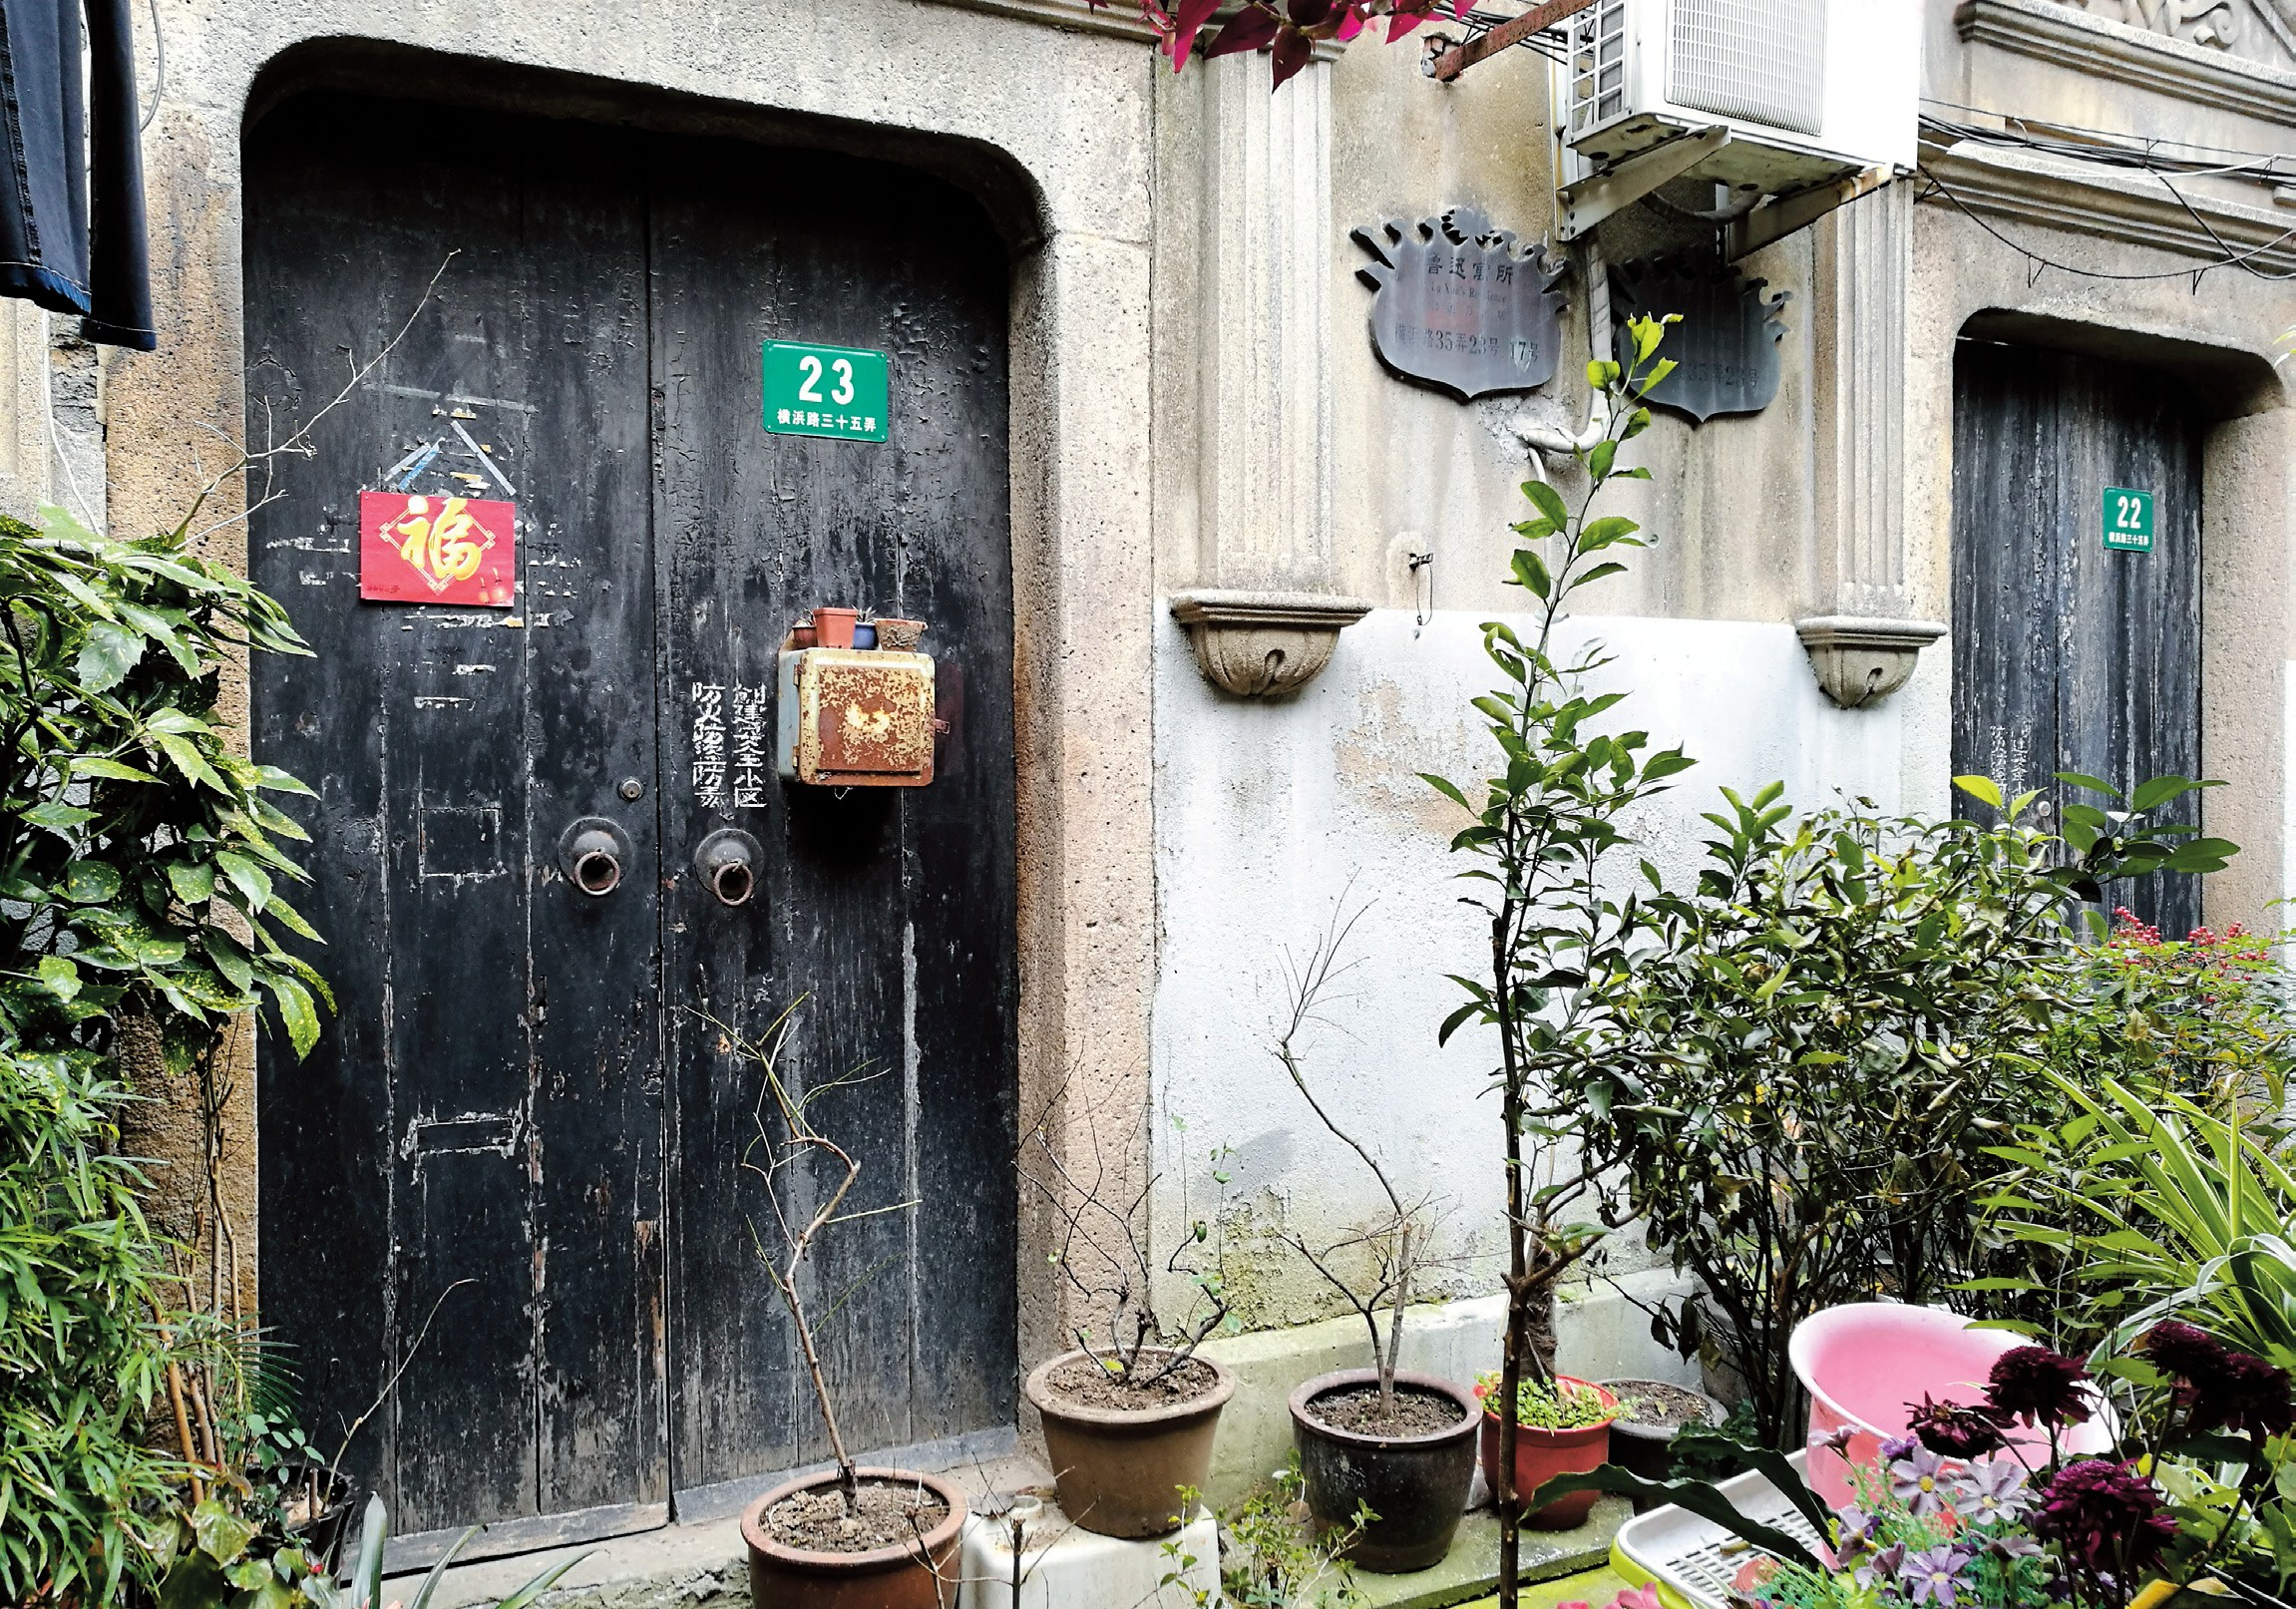 The shikumen house at No. 23, Lane 35 Hengbang Road is where Lu Xun and his wife Xu Guangping lived from 1927 to 1929 in Jing Yun Li. The No. 22 next door used to house Rou Shi, a patriotic writer.